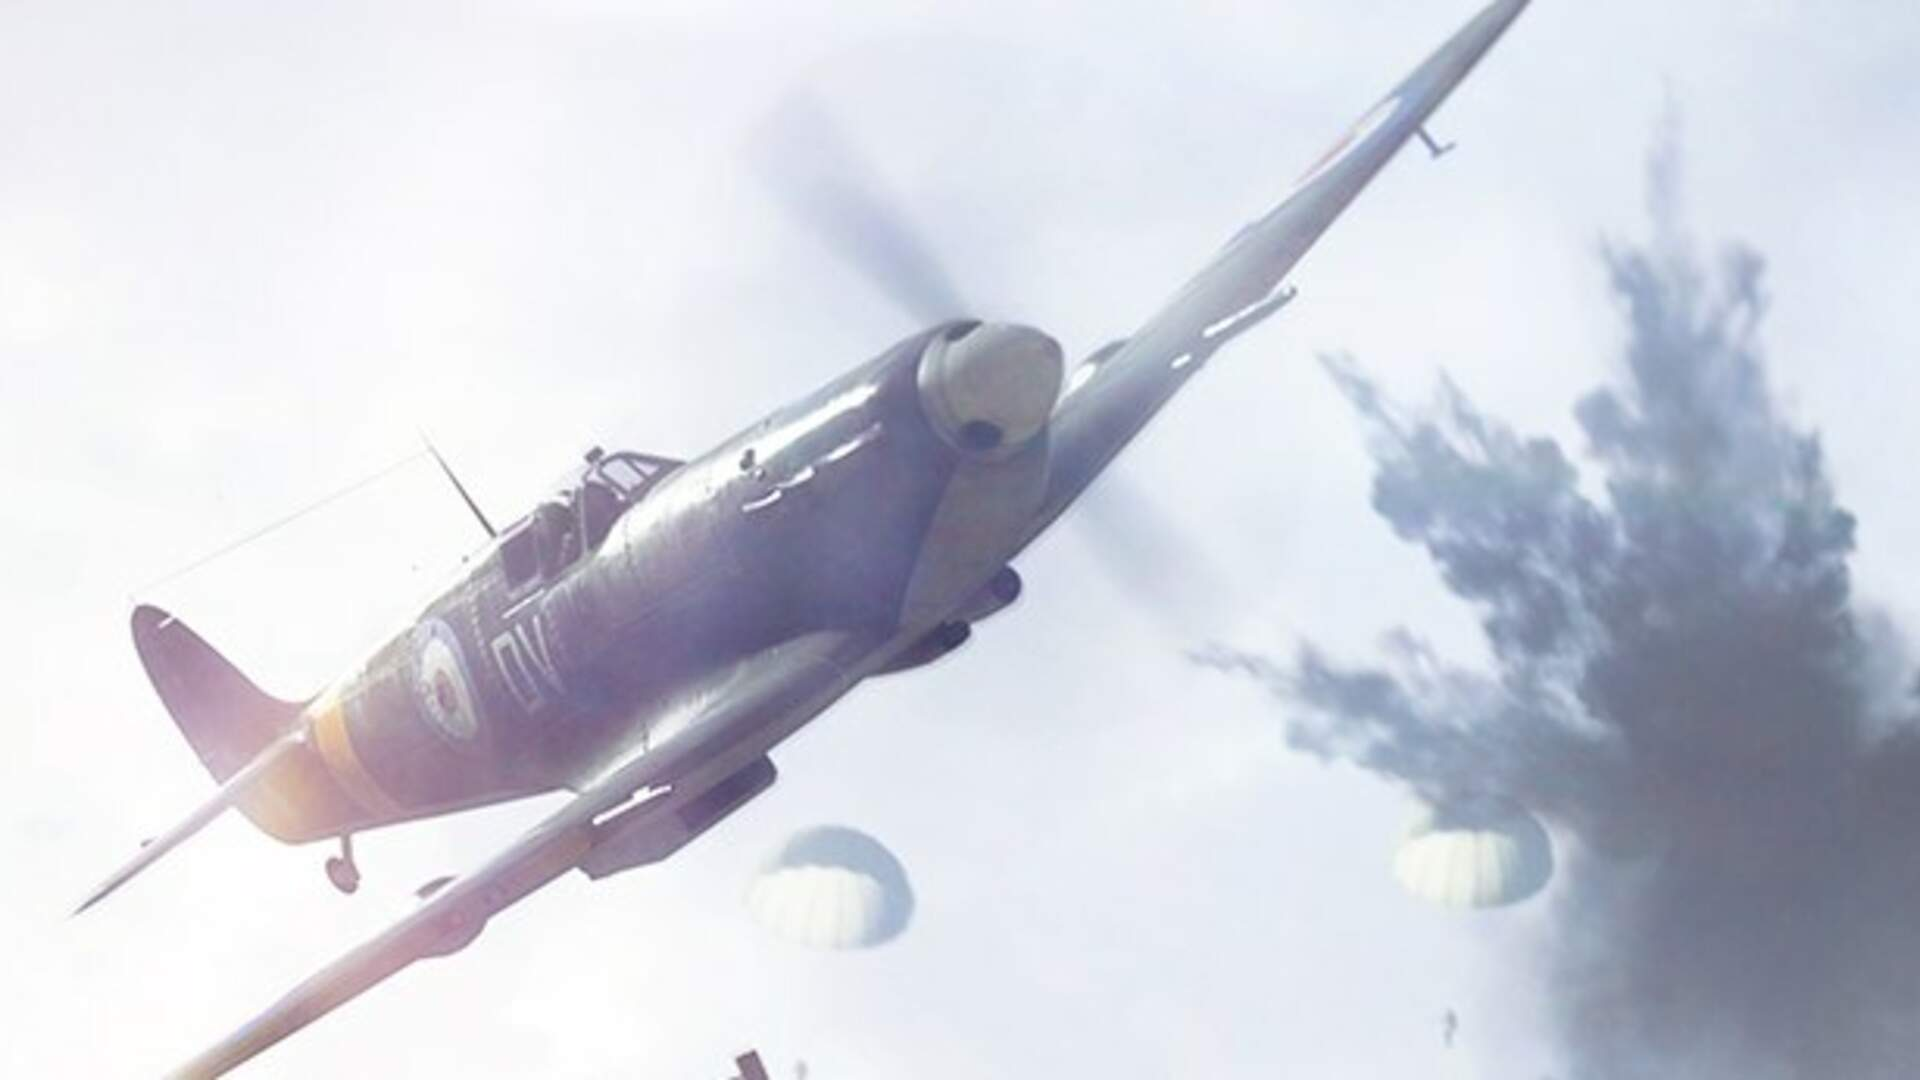 Battlefield 5 Grand Operations Won't Be Available at Launch [Update: Grand Operations Will Be Available at Launch]